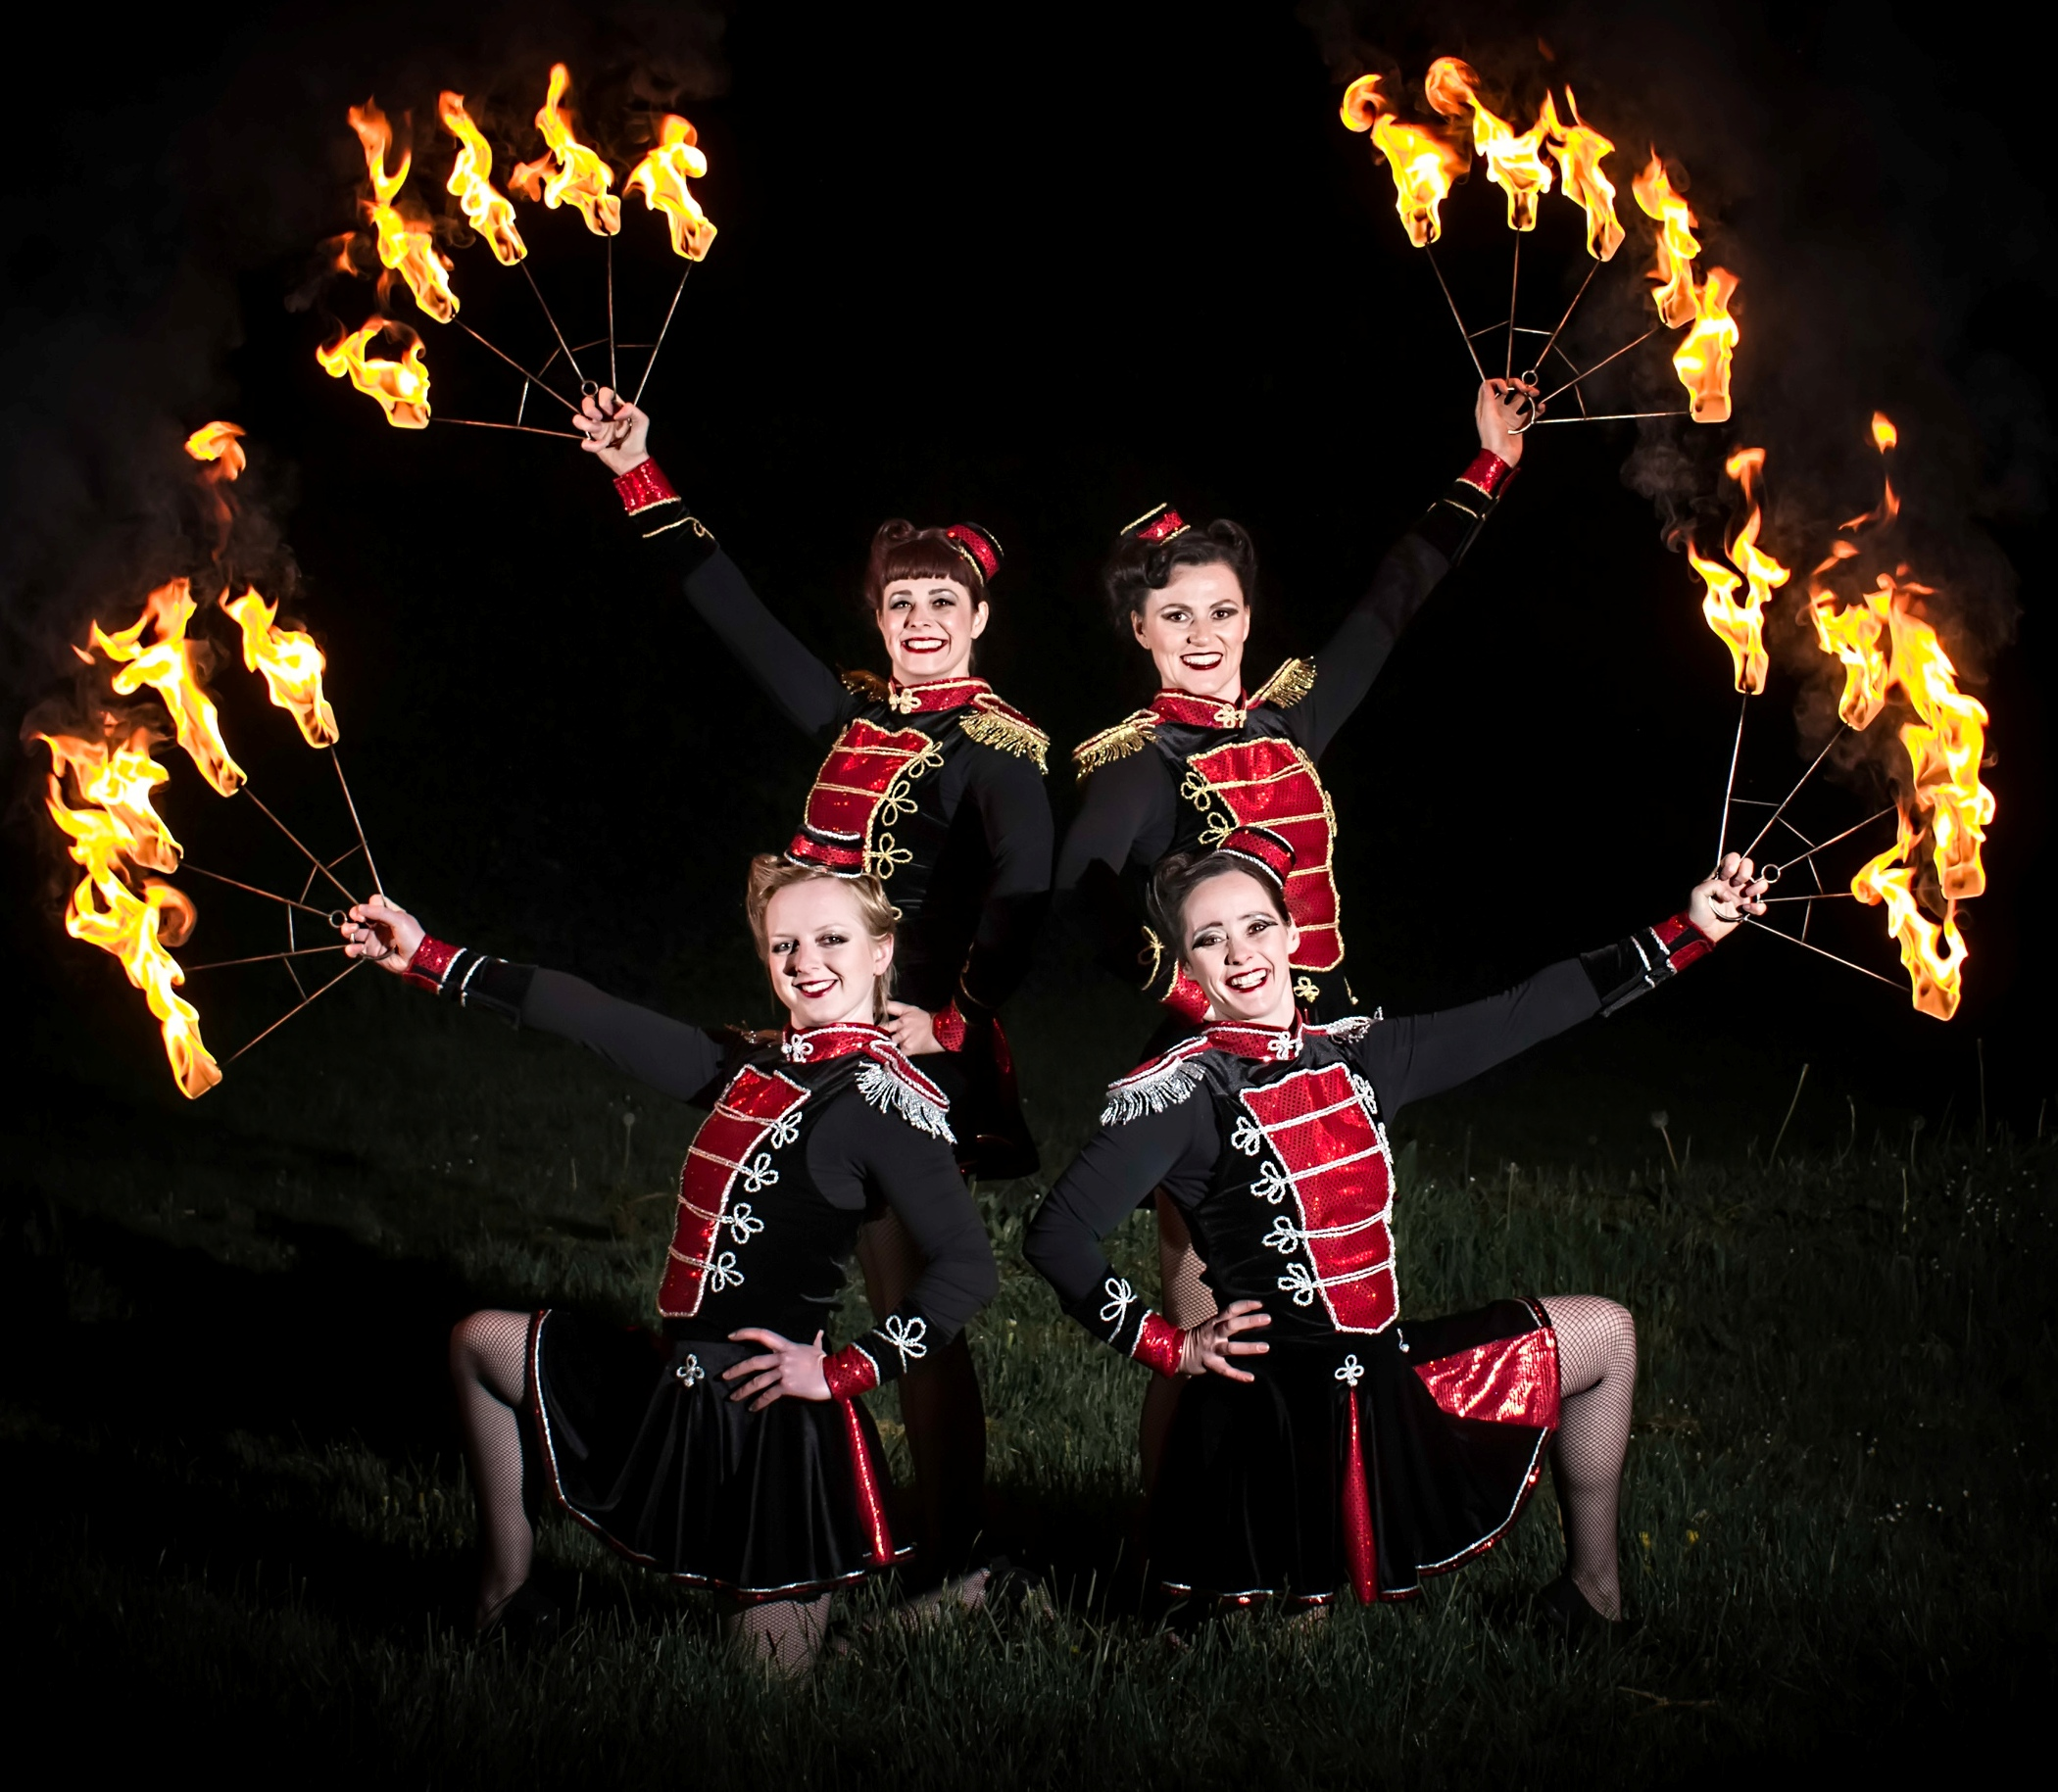 Circus-Antics-Fire-Performers-The-Dangerettes